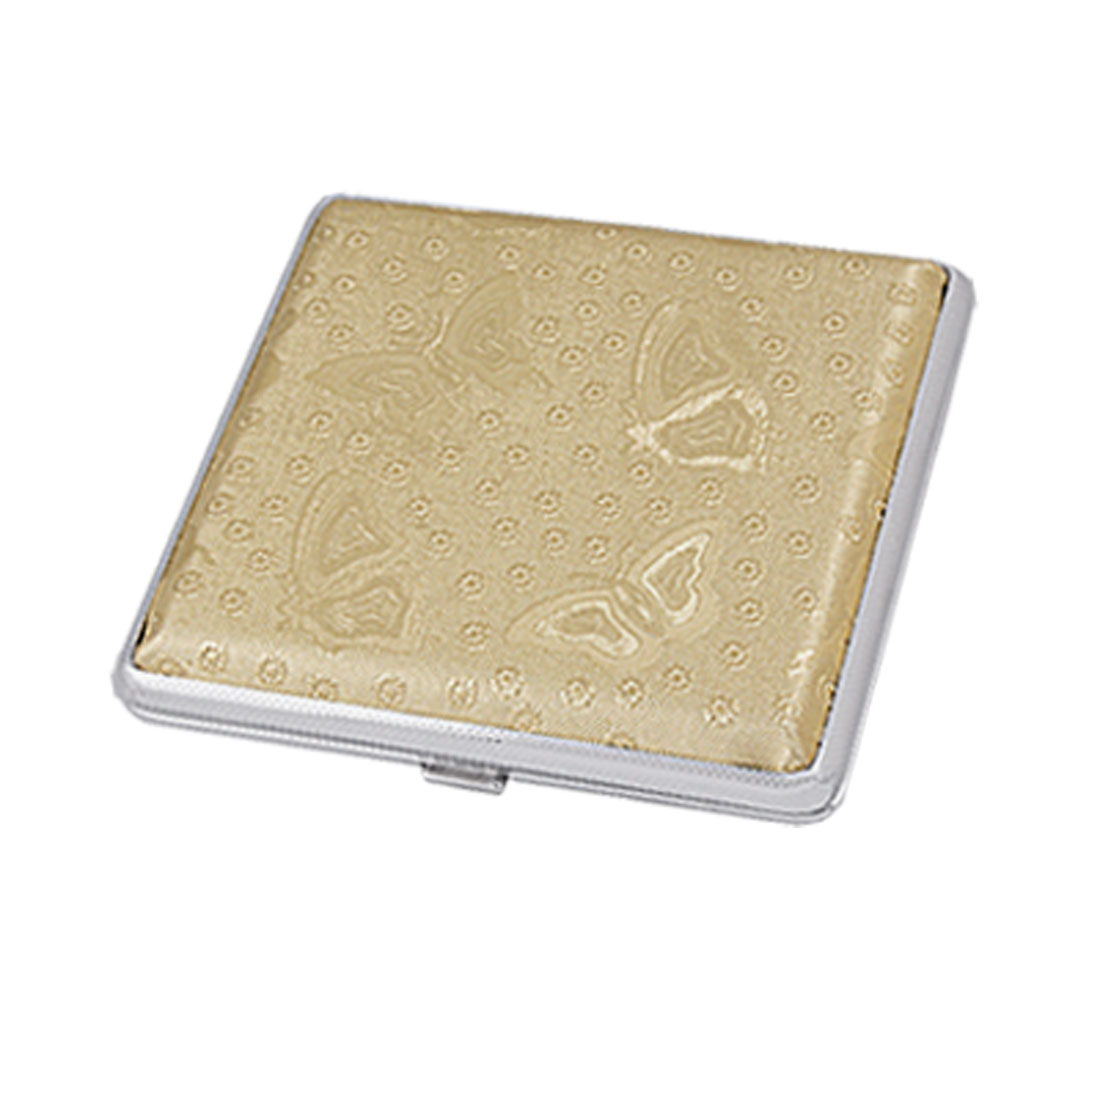 Pocket Butterfly Detail Cigarette Tobacco Box Case Holder